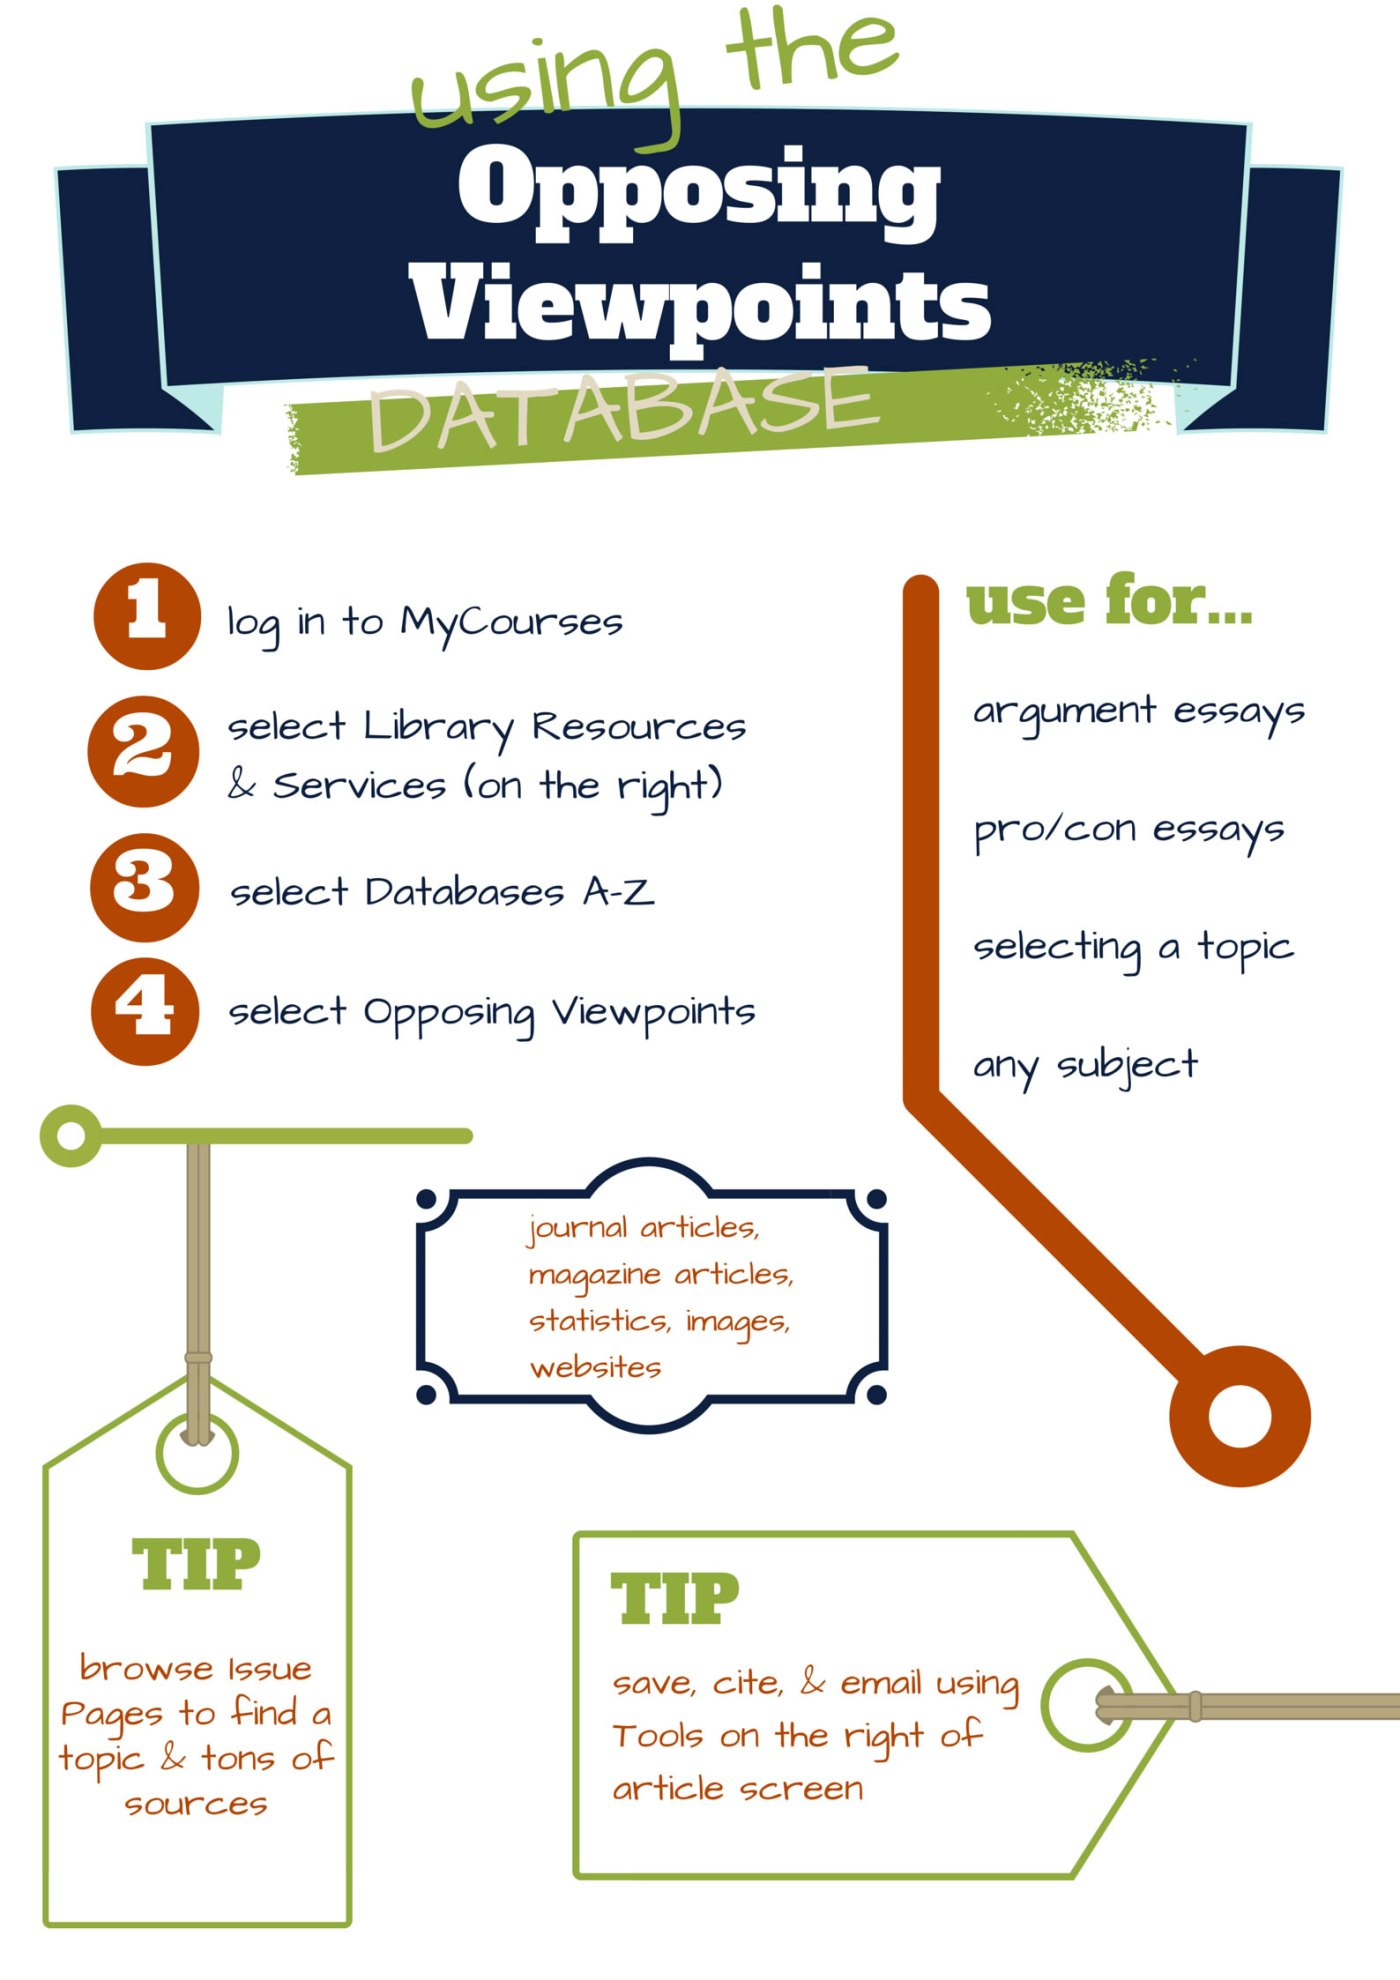 Point-and-click instructions for using the Opposing Viewpoints database